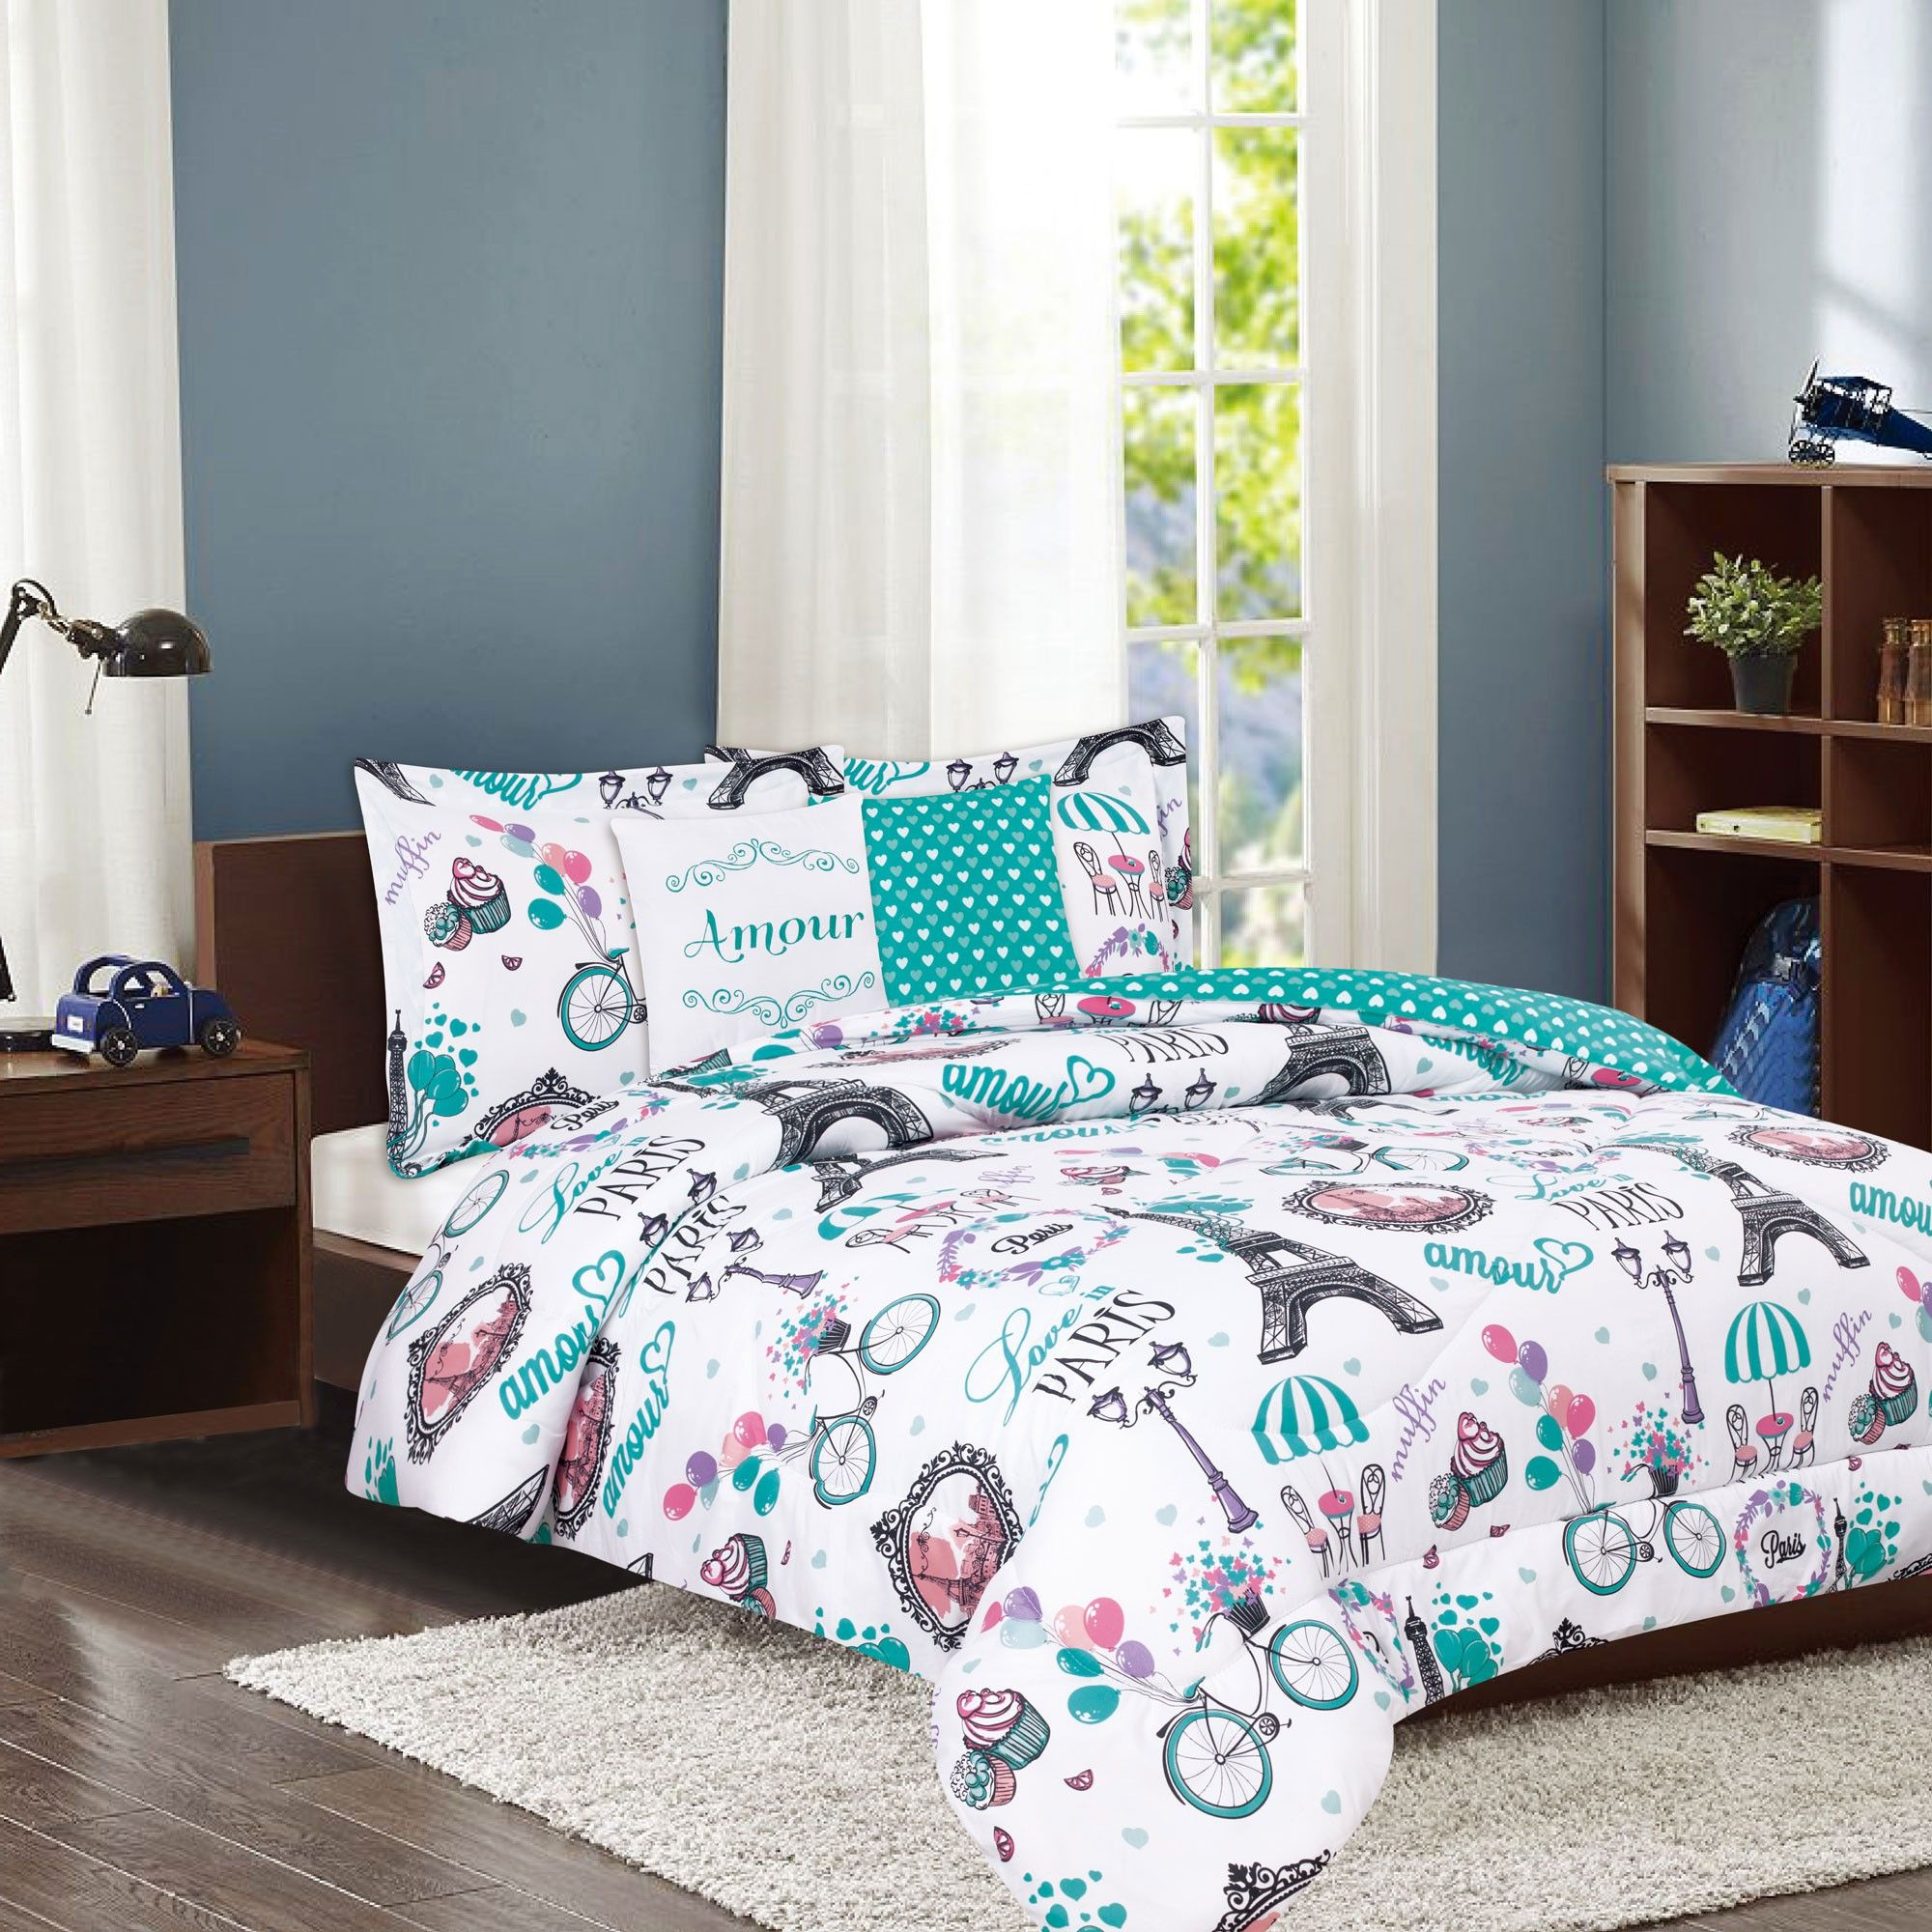 Crest Home Amour Twin Paris Comforter 4 Piece Bedding Set Teal Eiffel Tower French Cafe Discontinued No Longer Available Paris Comforter Paris Bedding Teal Bedding Sets